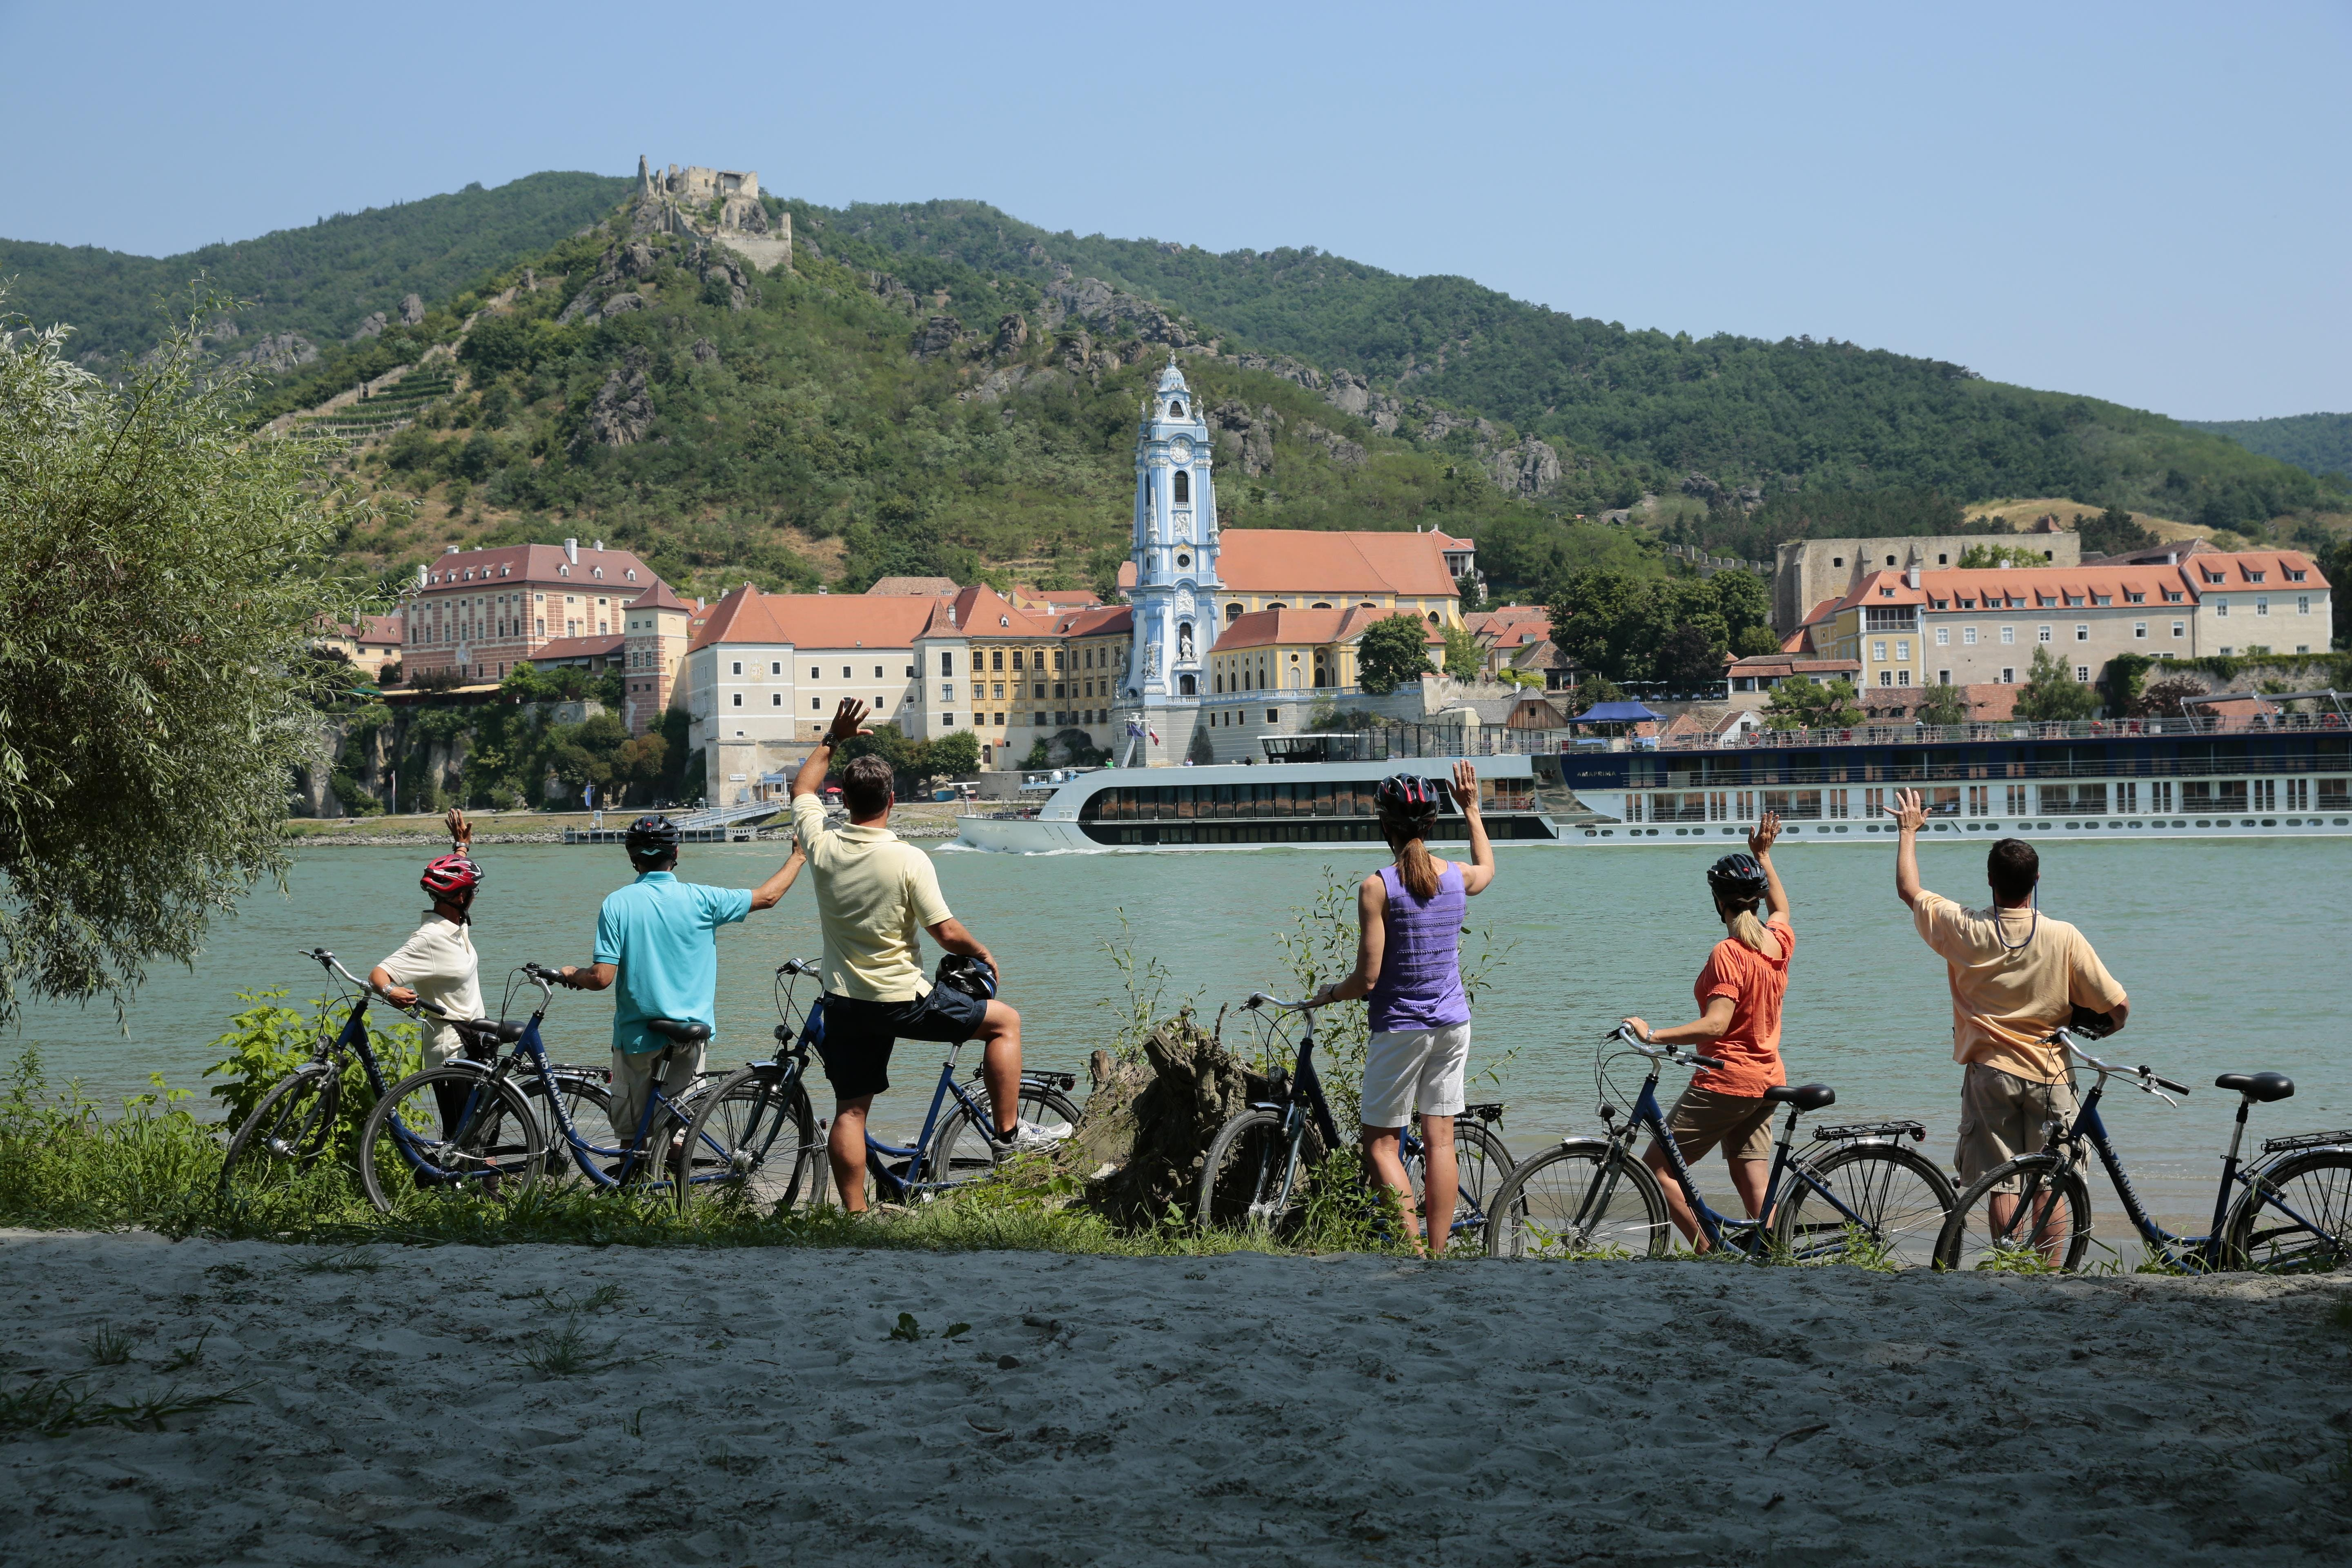 AmaWaterways journeys include bicycles for forging new paths as a family.